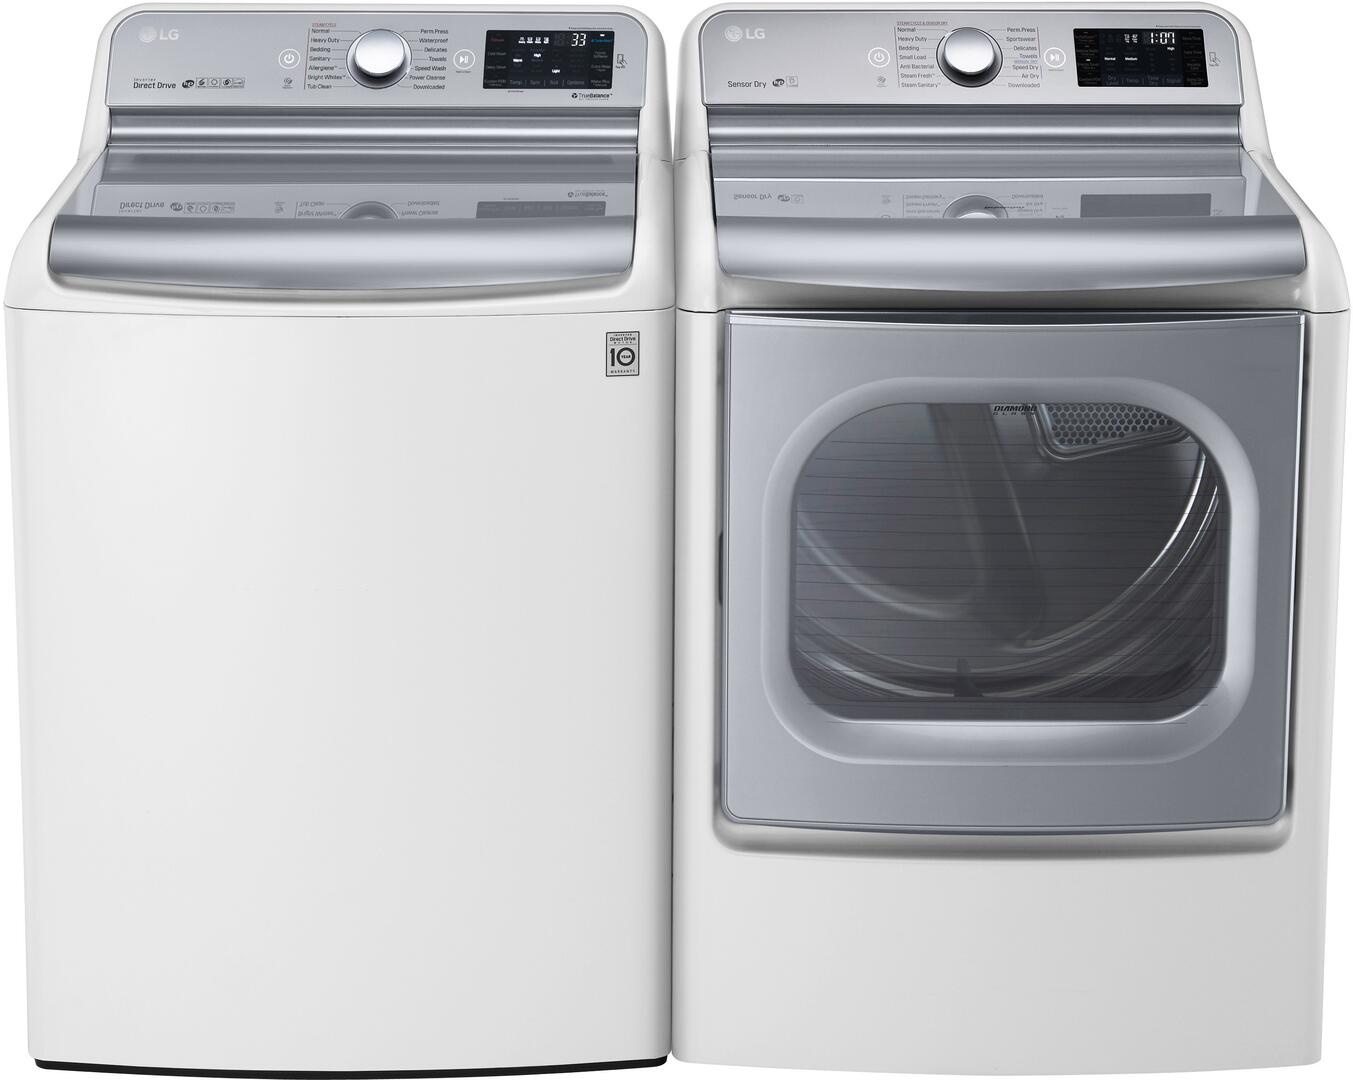 Lg Wt7700hwa 29 Inch Turbowash Series 5 7 Cu Ft Top Load